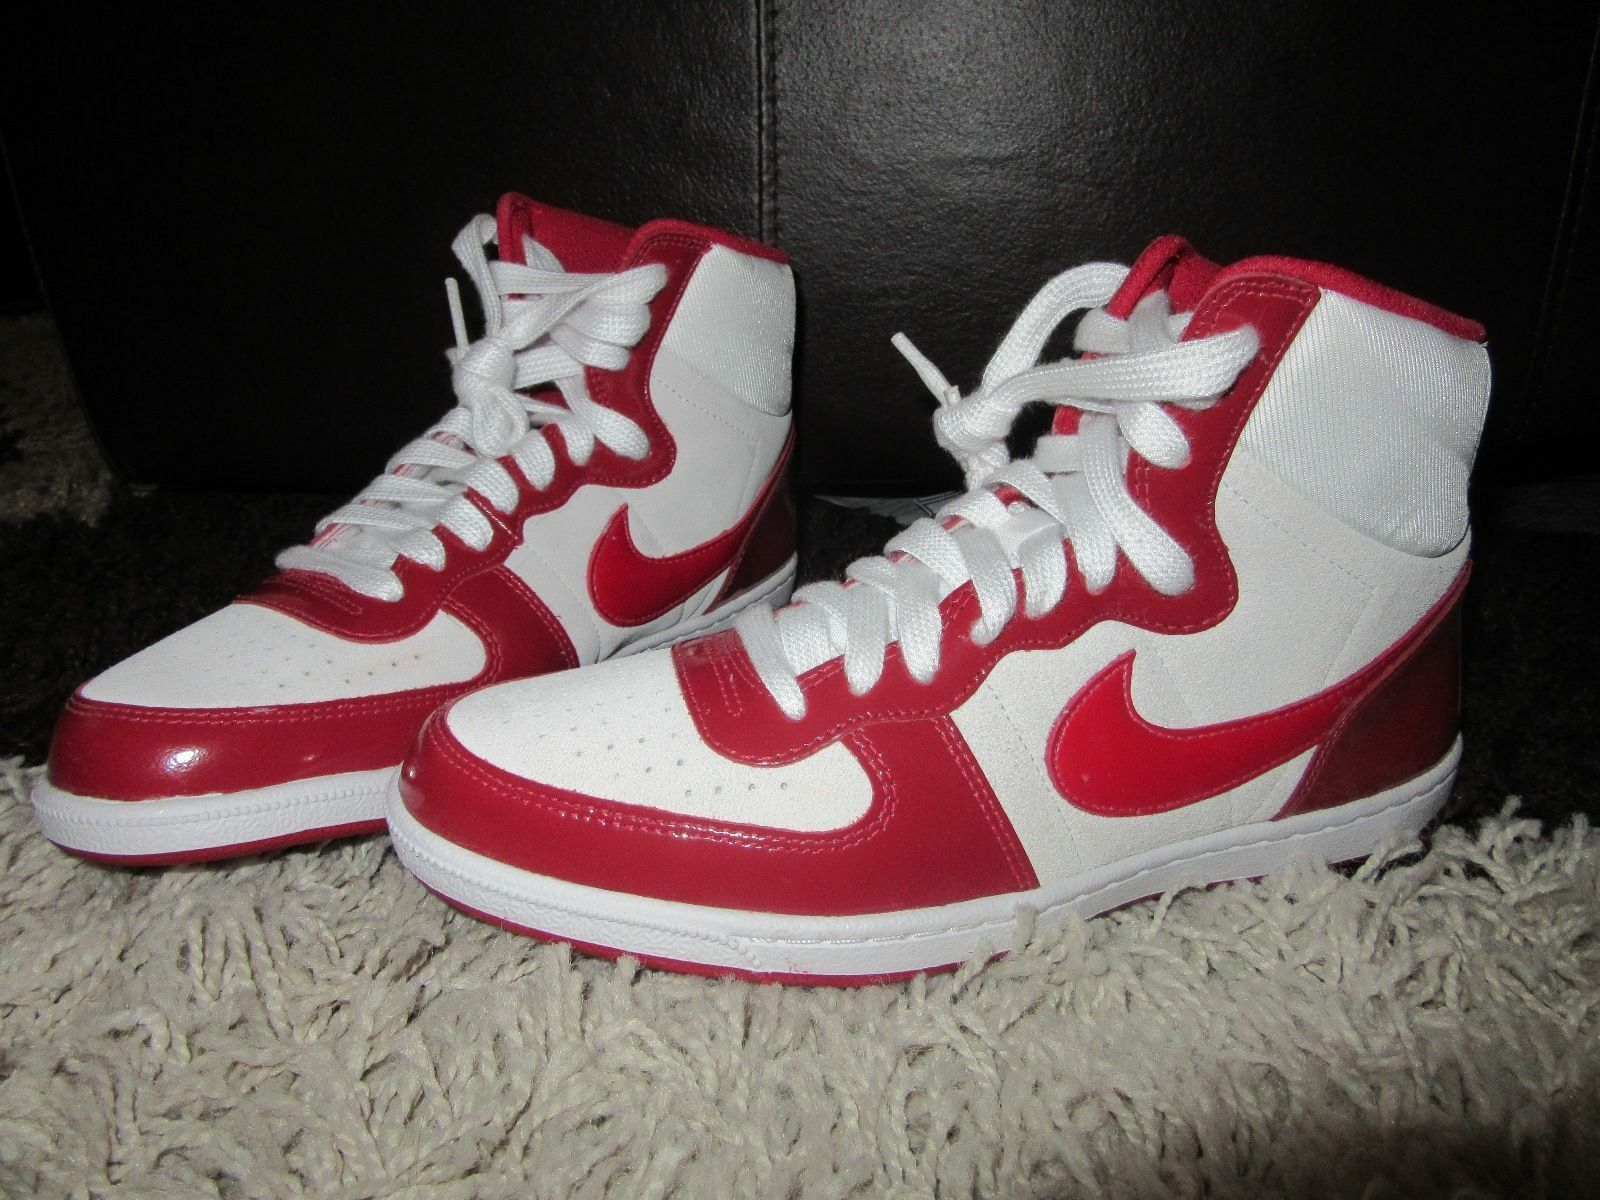 NEW Damenschuhe NIKE Trainers Trainers NIKE UK 5.5 Terminator Lite High Top ROT Weiß Suede Cream 3cac40